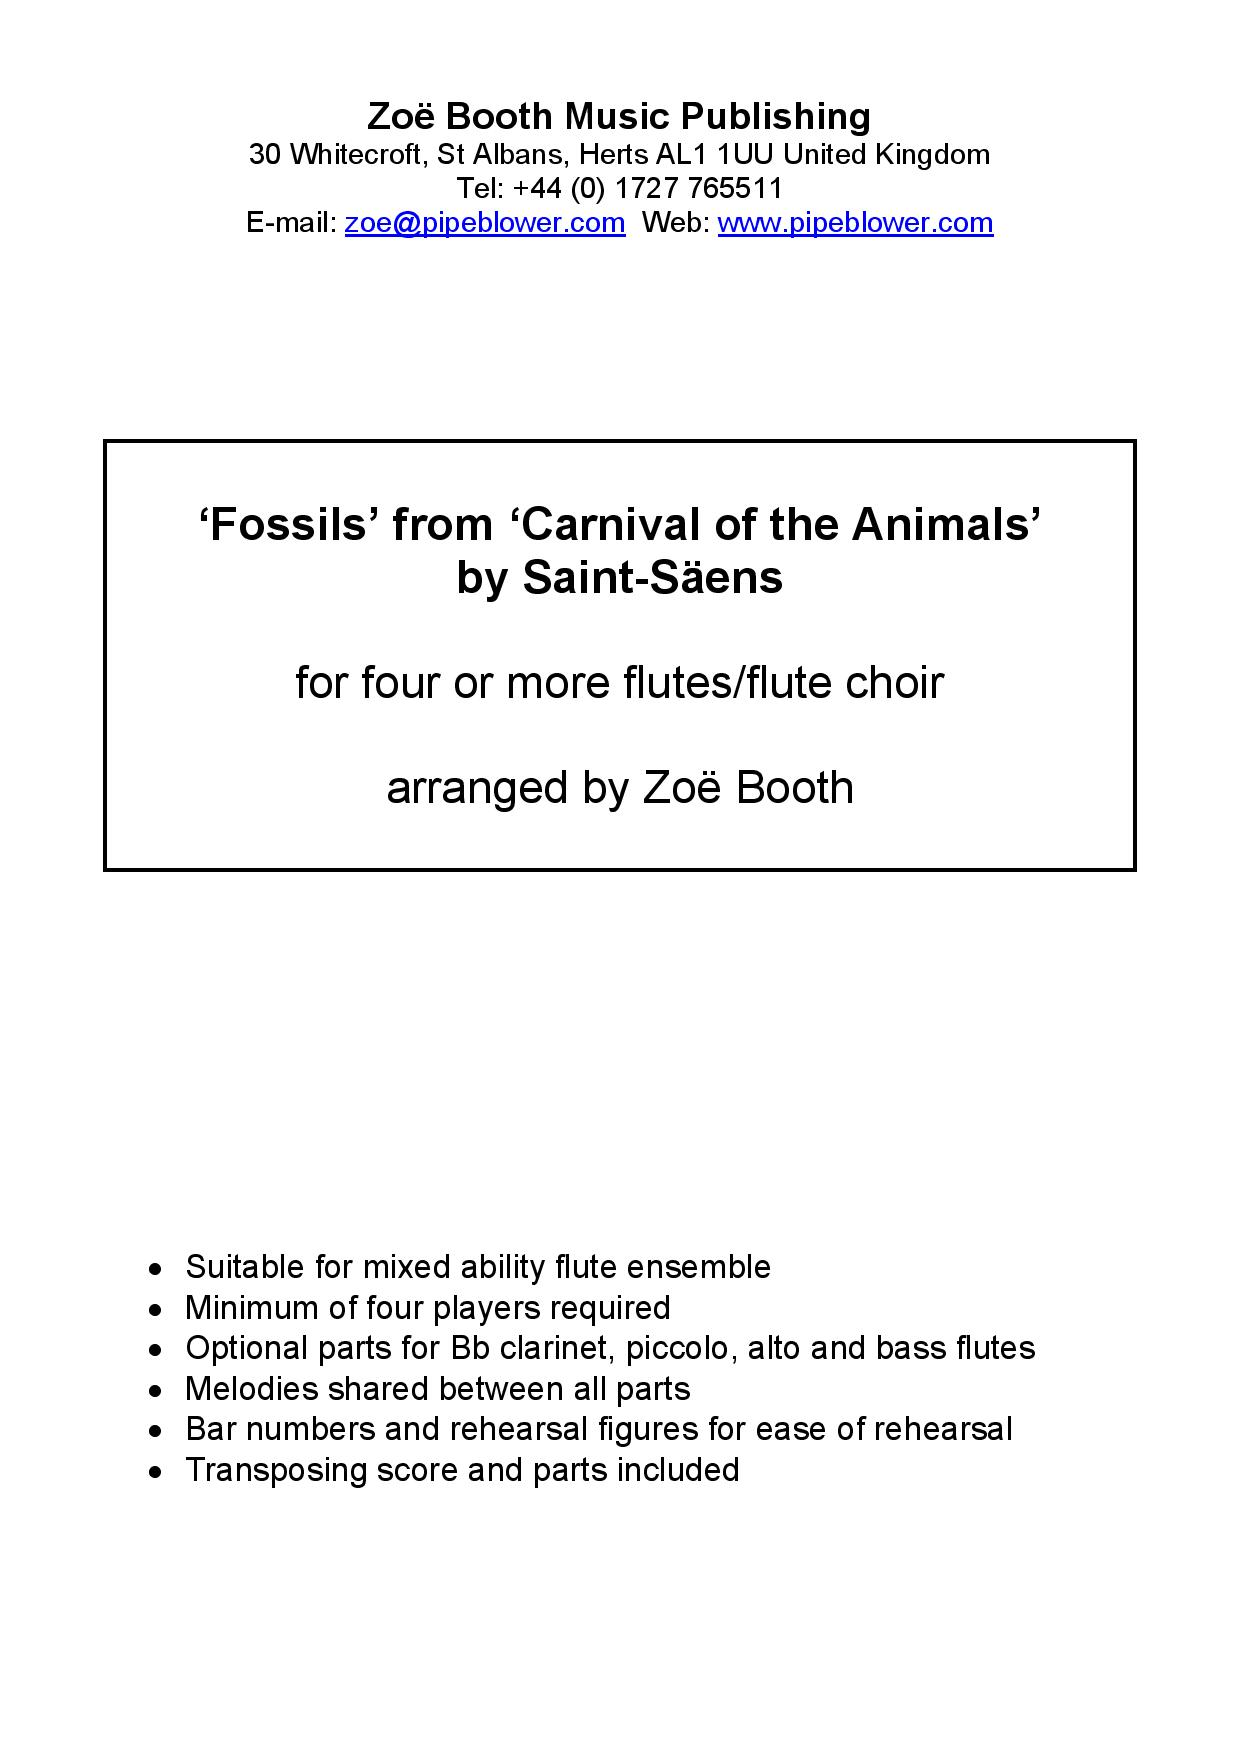 Fossils by Saint-Saëns  arranged by Zoë Booth for four or more flutes/flute choir